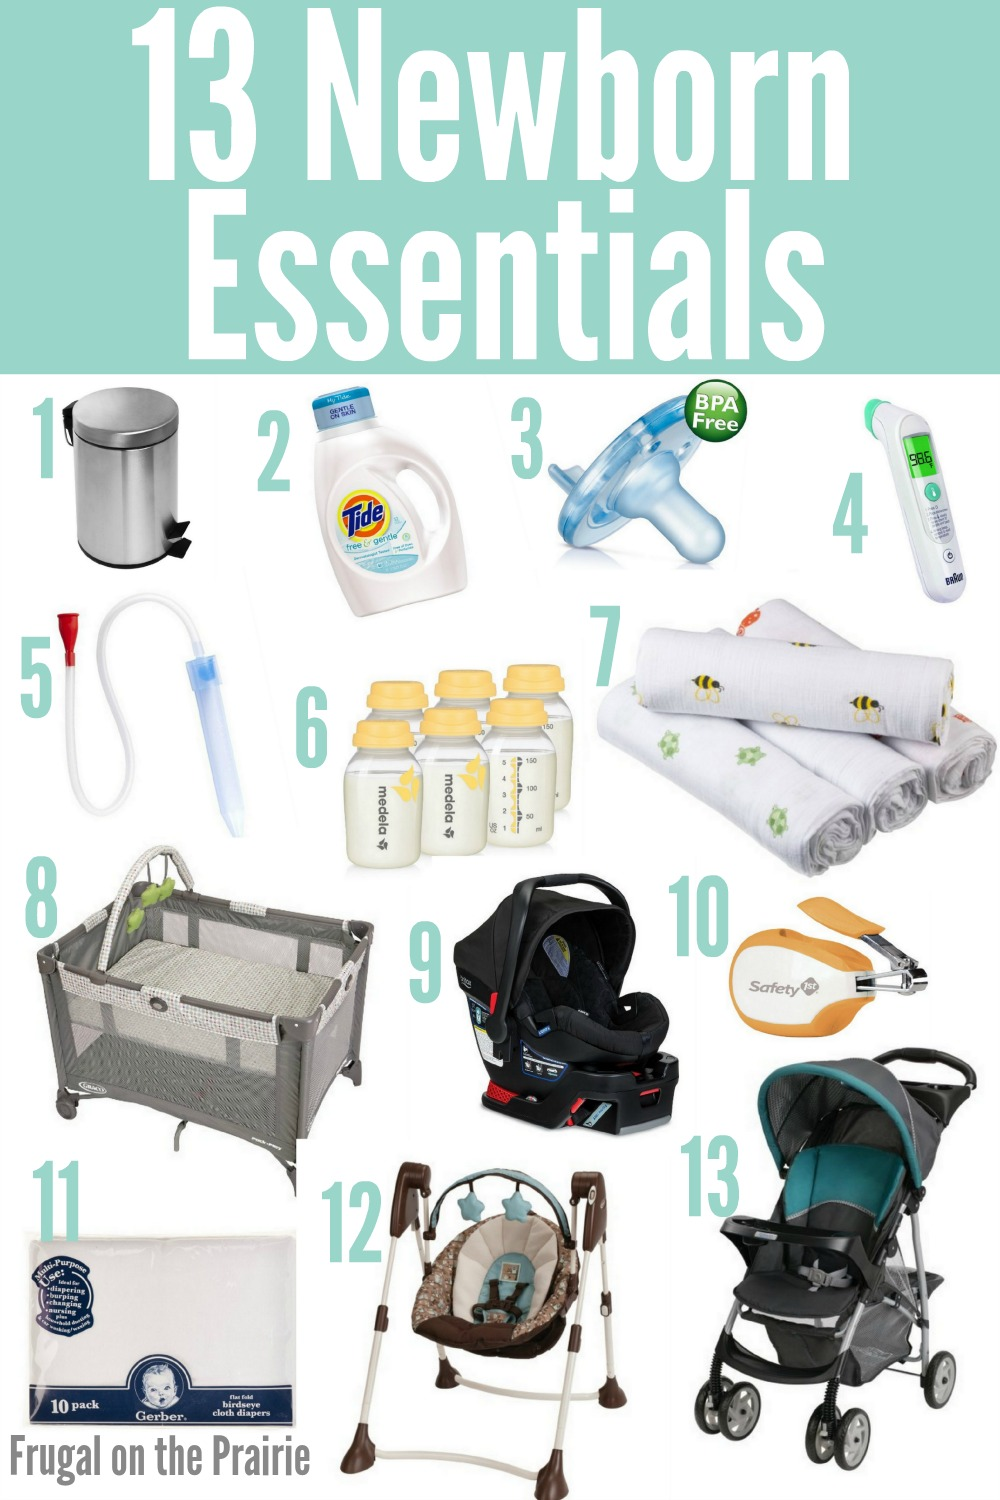 Not sure whether you're prepared and have all of the newborn essentials? Here are 13 MUST HAVE baby items that most parents can't live without!